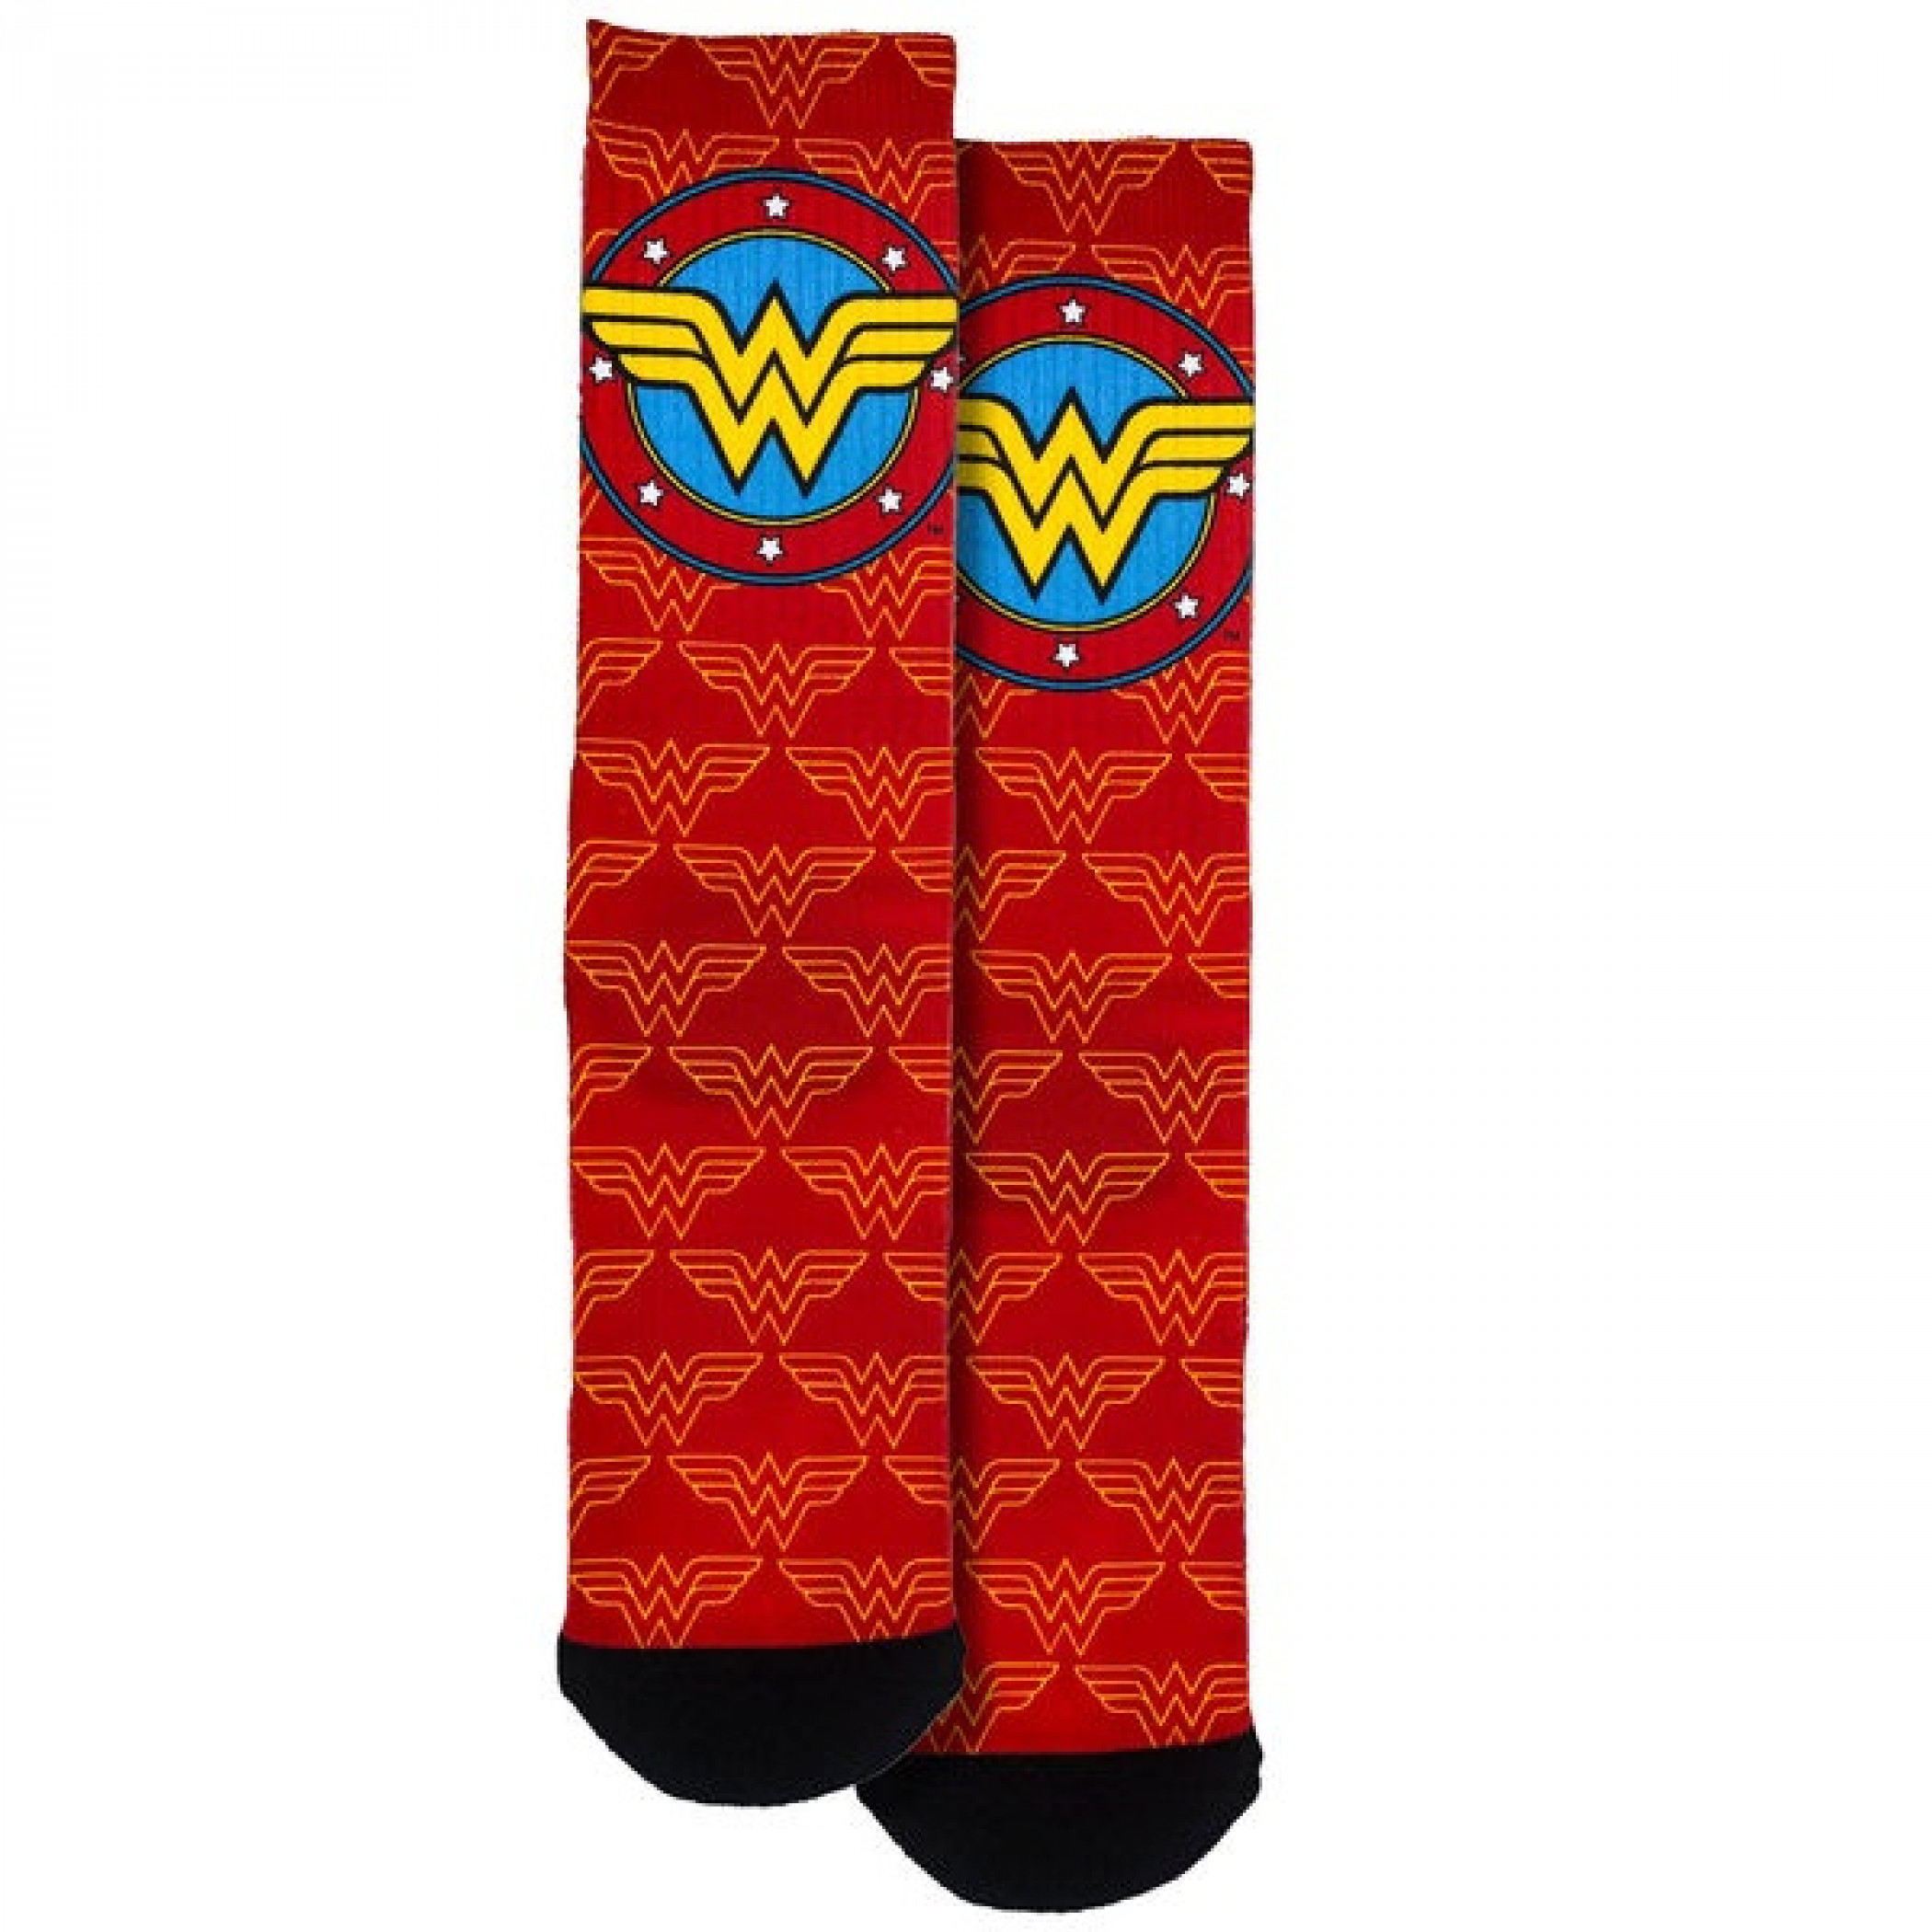 Wonder Woman Logo and Symbols All Over Crew Socks